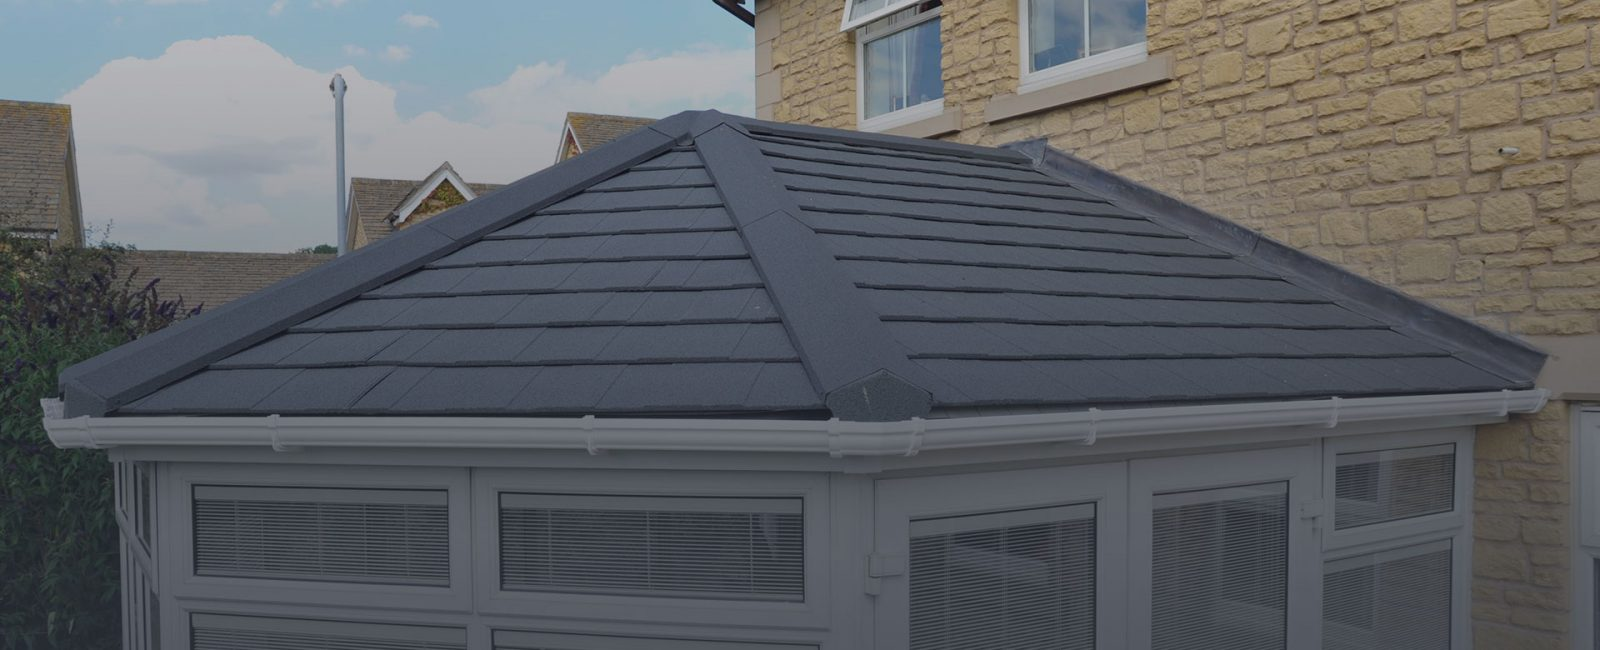 Tiled Roof Glazed Extensions In The West Midlands Dw Windows